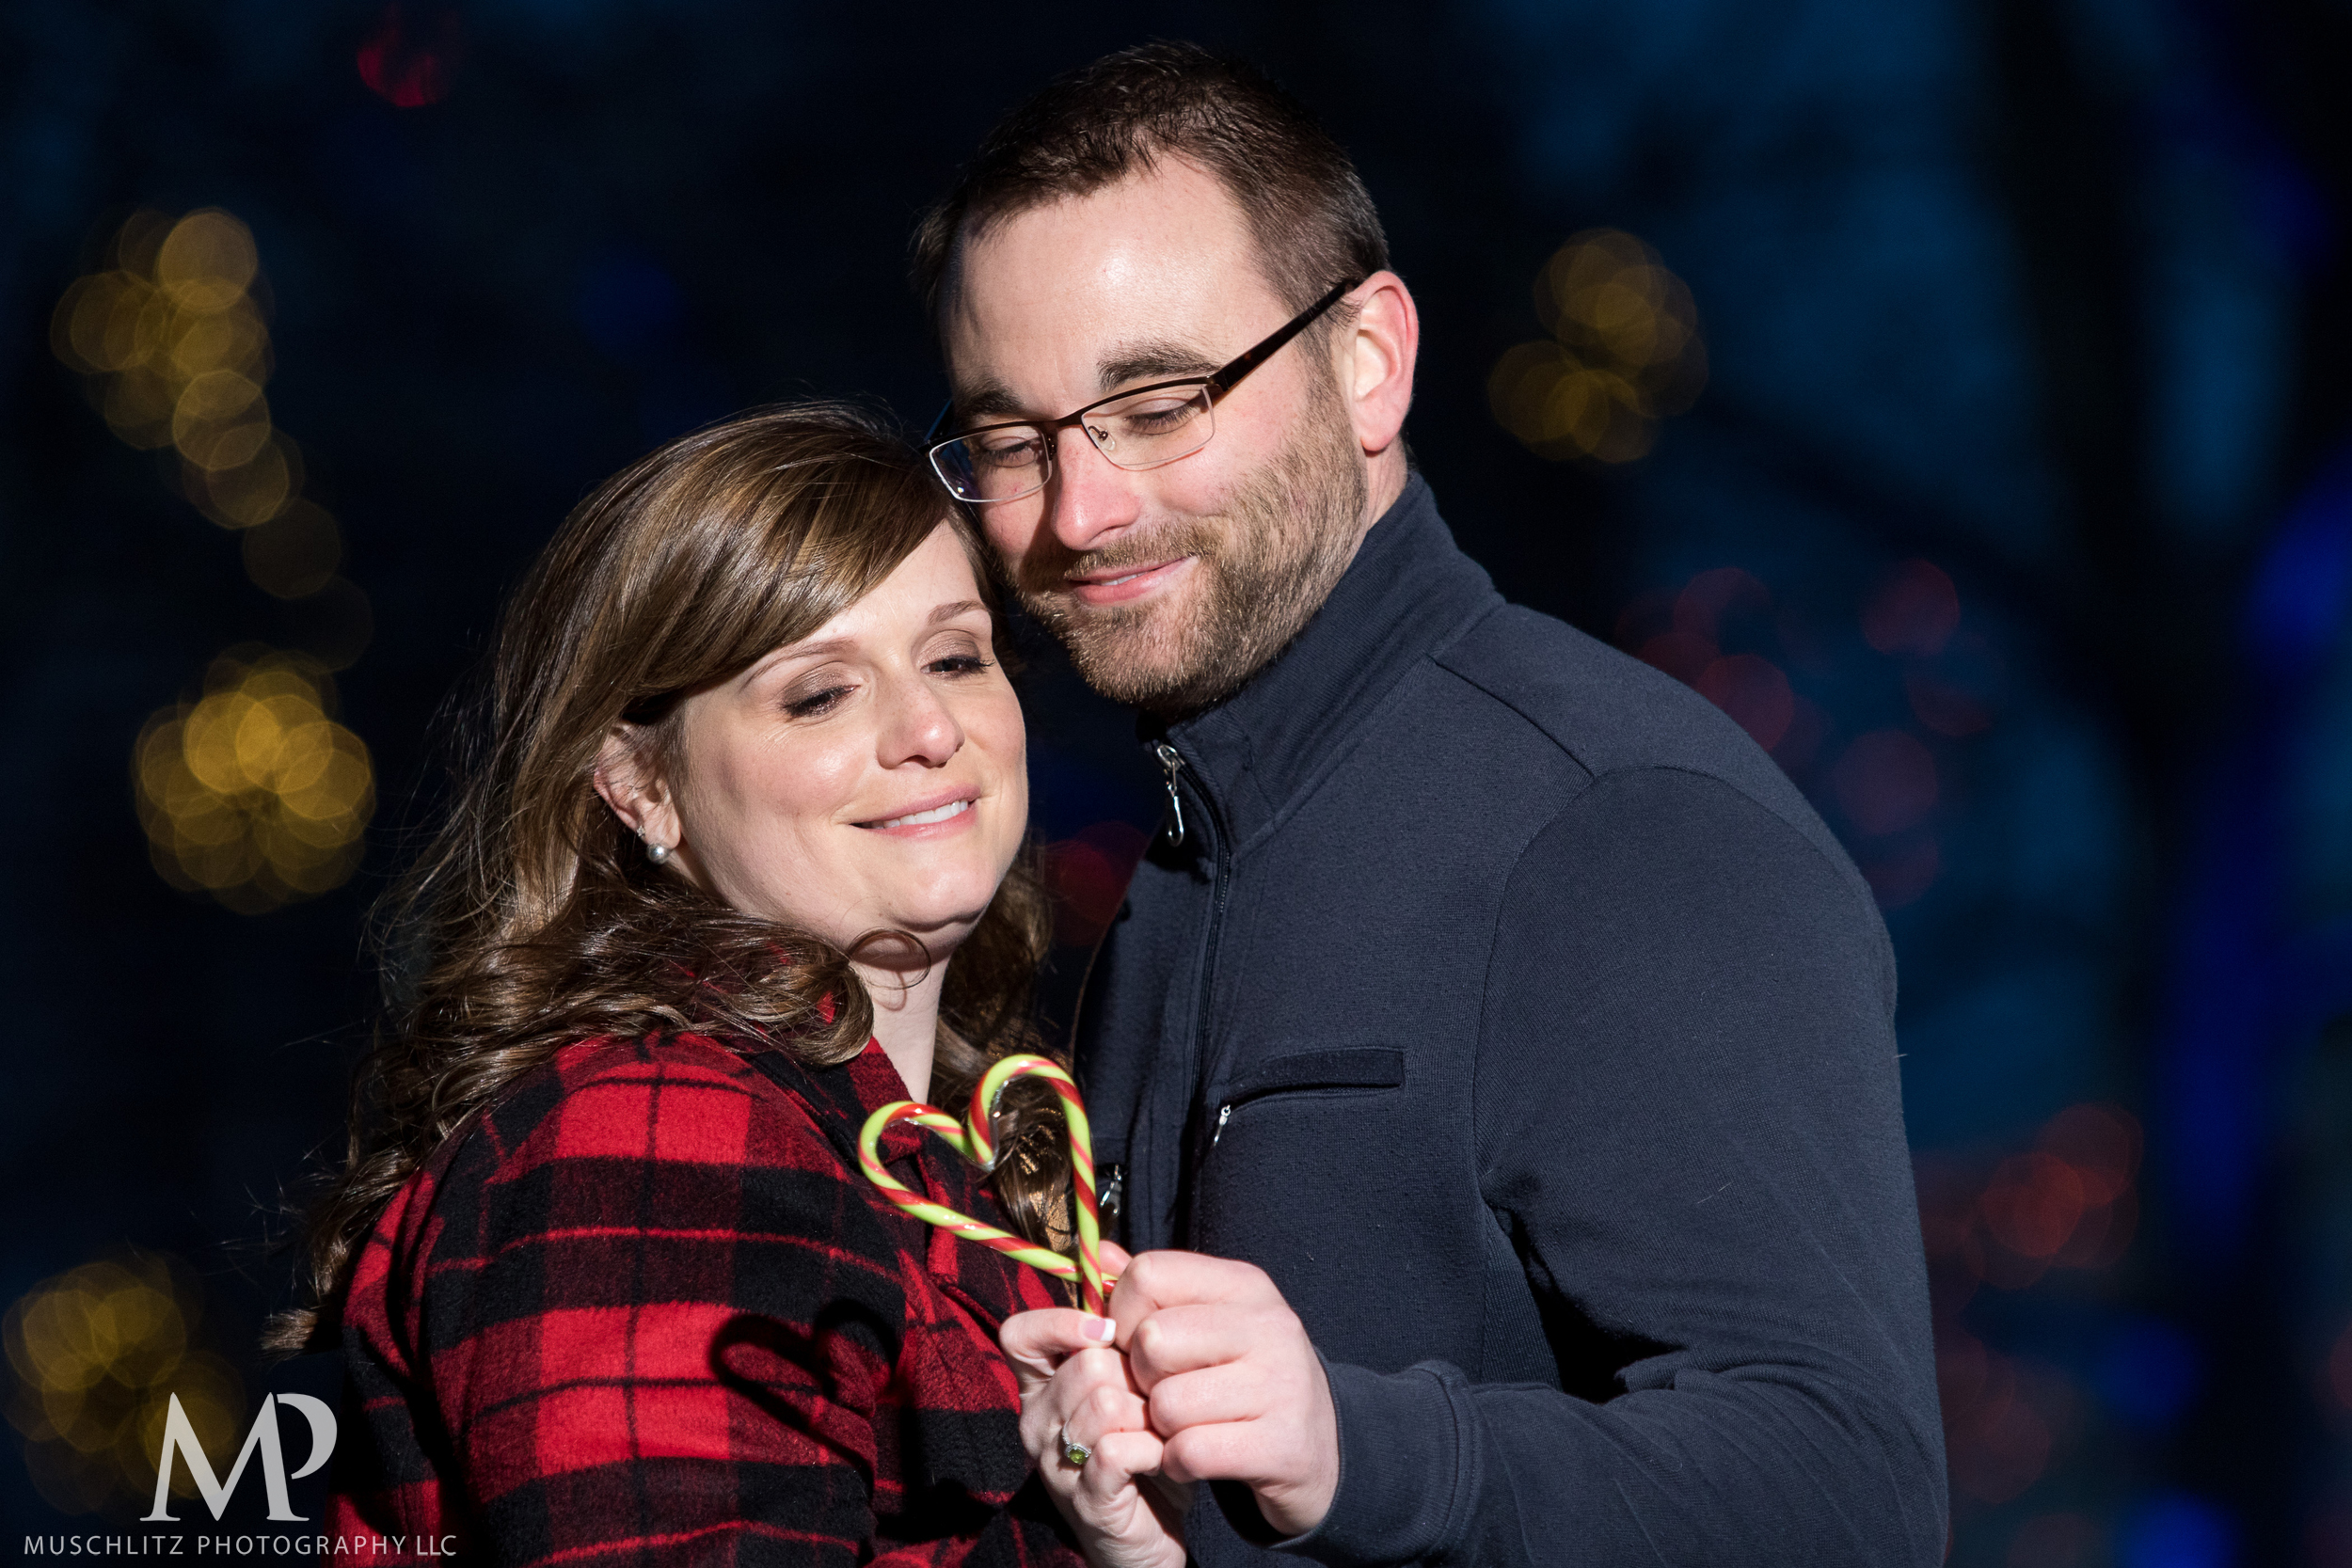 bicentennial-park-engagement-session-holiday-portraits-columbus-ohio-043.JPG